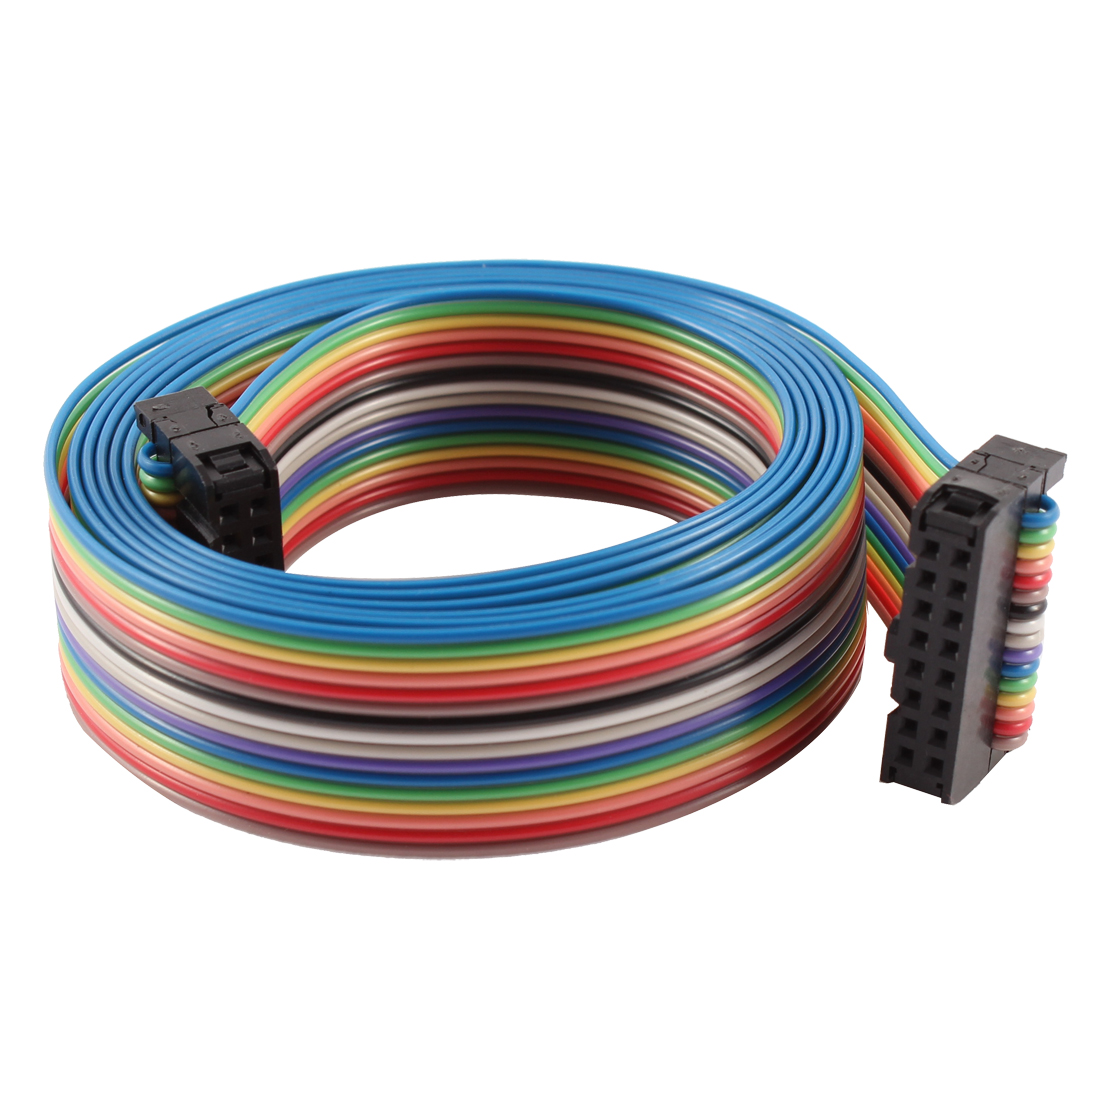 2.54mm Pitch 16 Pin 16 Way F/F Connector IDC Flat Rainbow Ribbon Cable 118cm